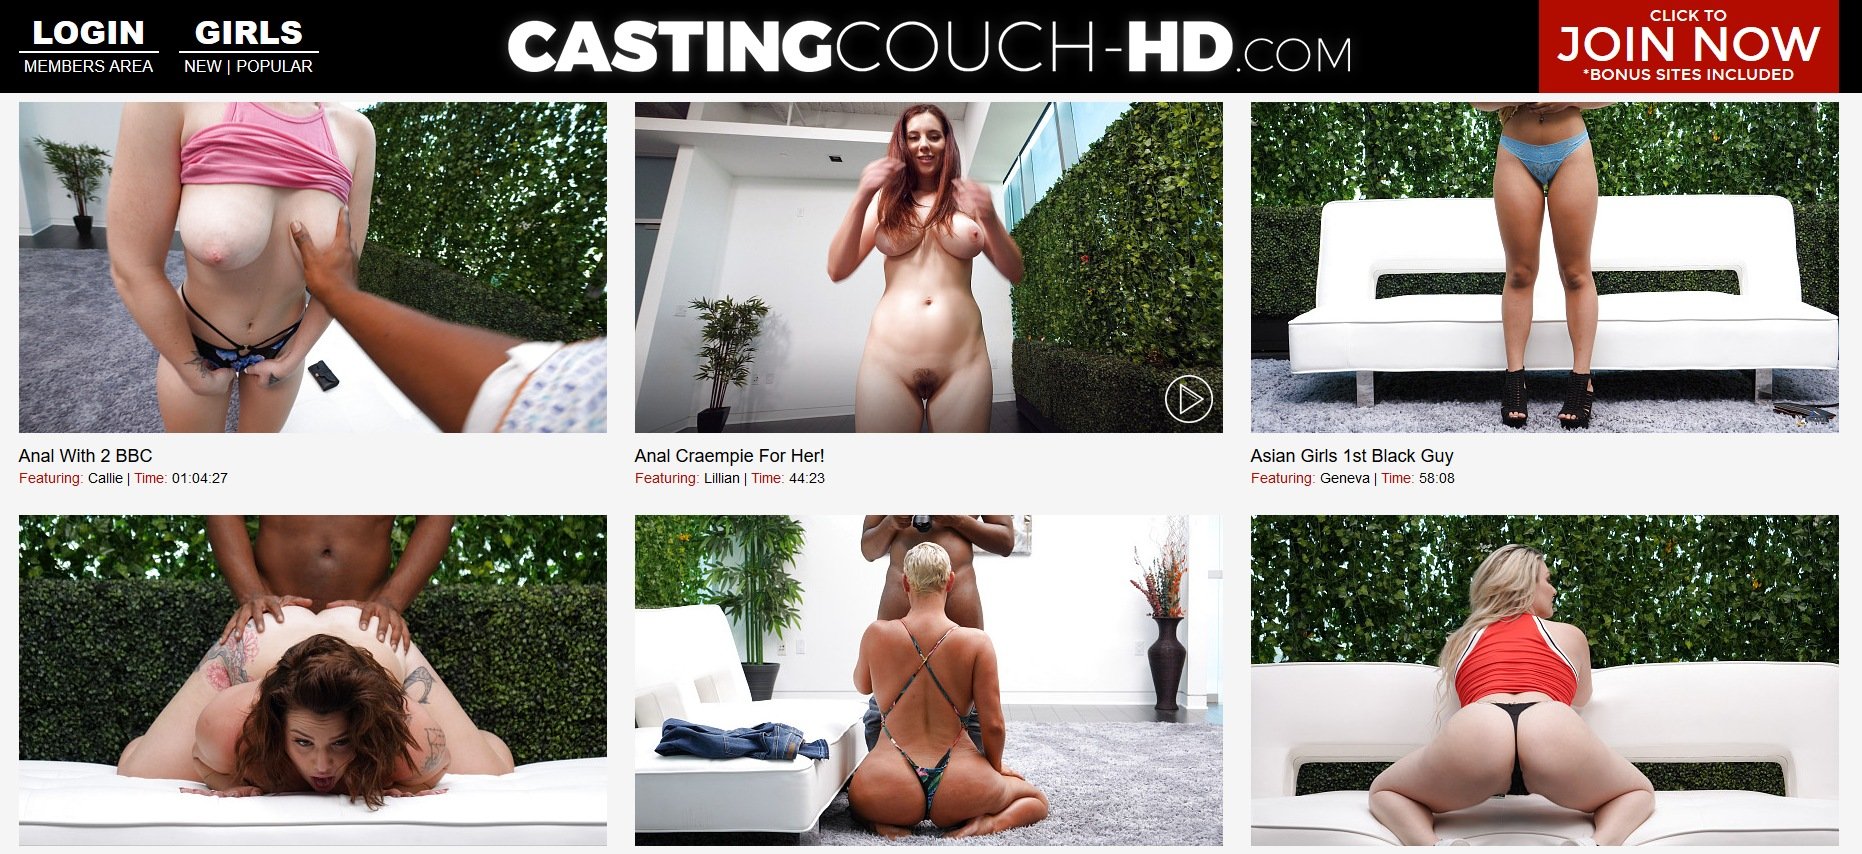 preview image password  for castingcouch-hd.com